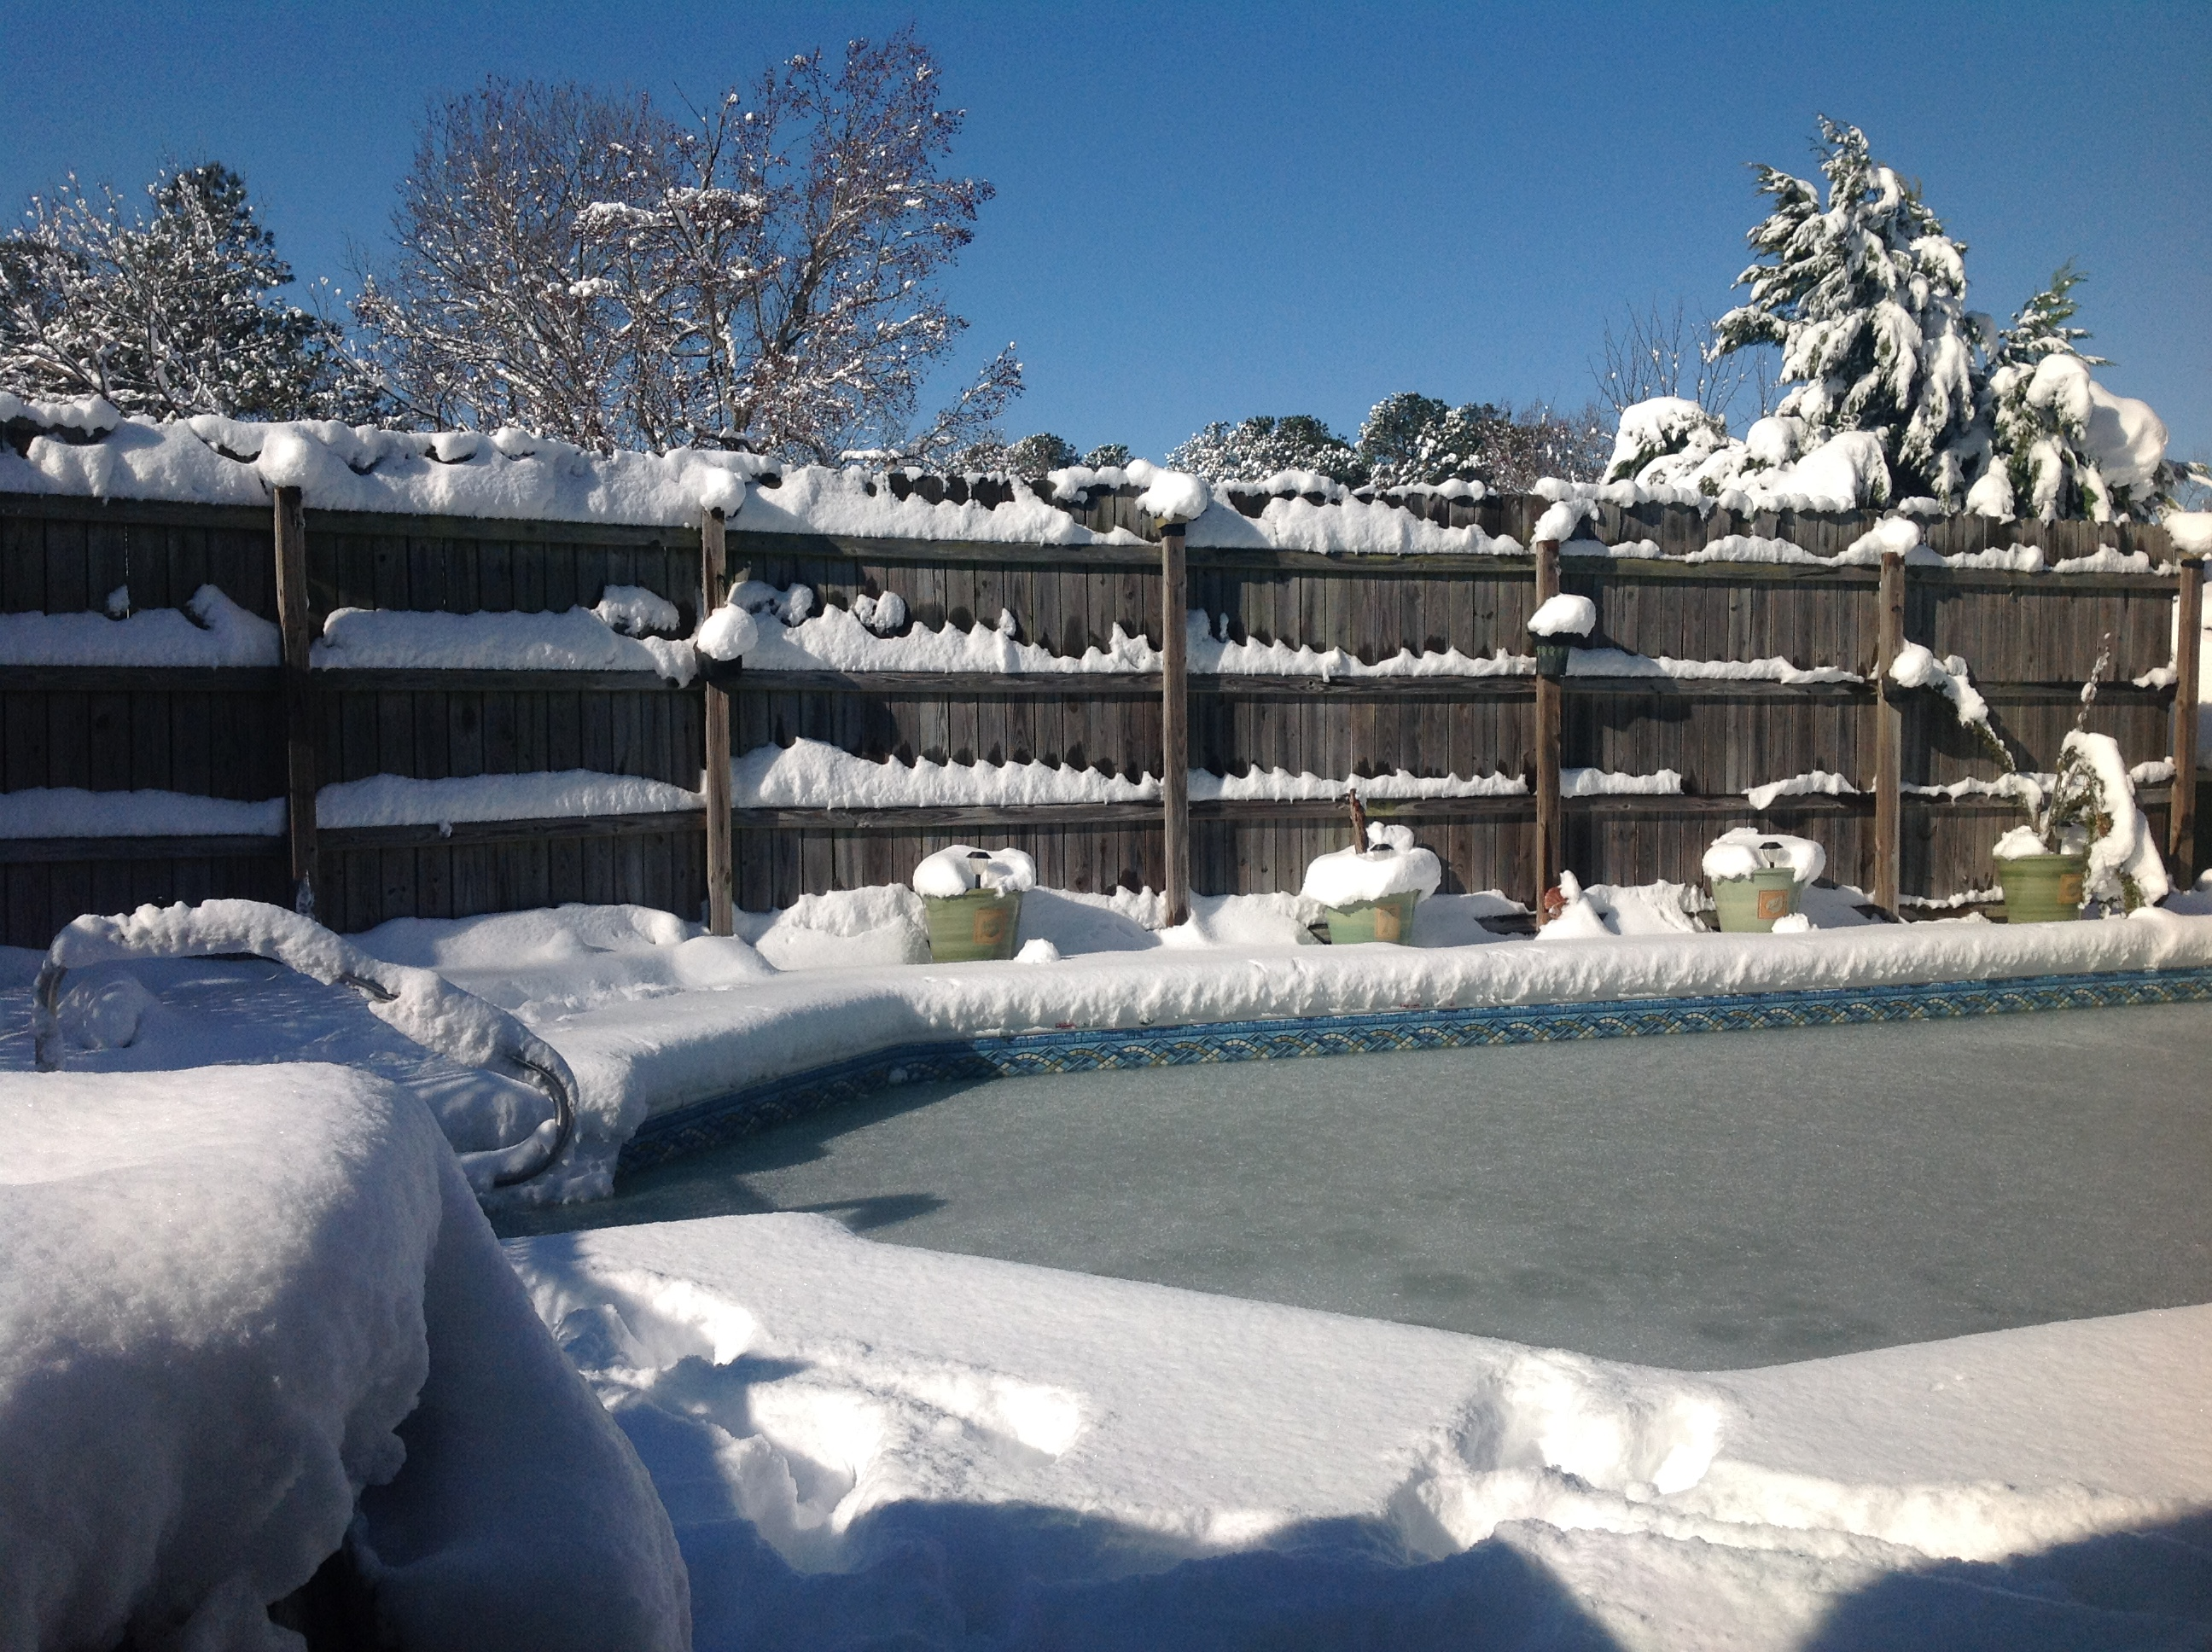 <div class='meta'><div class='origin-logo' data-origin='WTVD'></div><span class='caption-text' data-credit='Linda from Durham - ABC11 Eyewitness'>No swimming for a while - 8 inches of snow in Durham!</span></div>